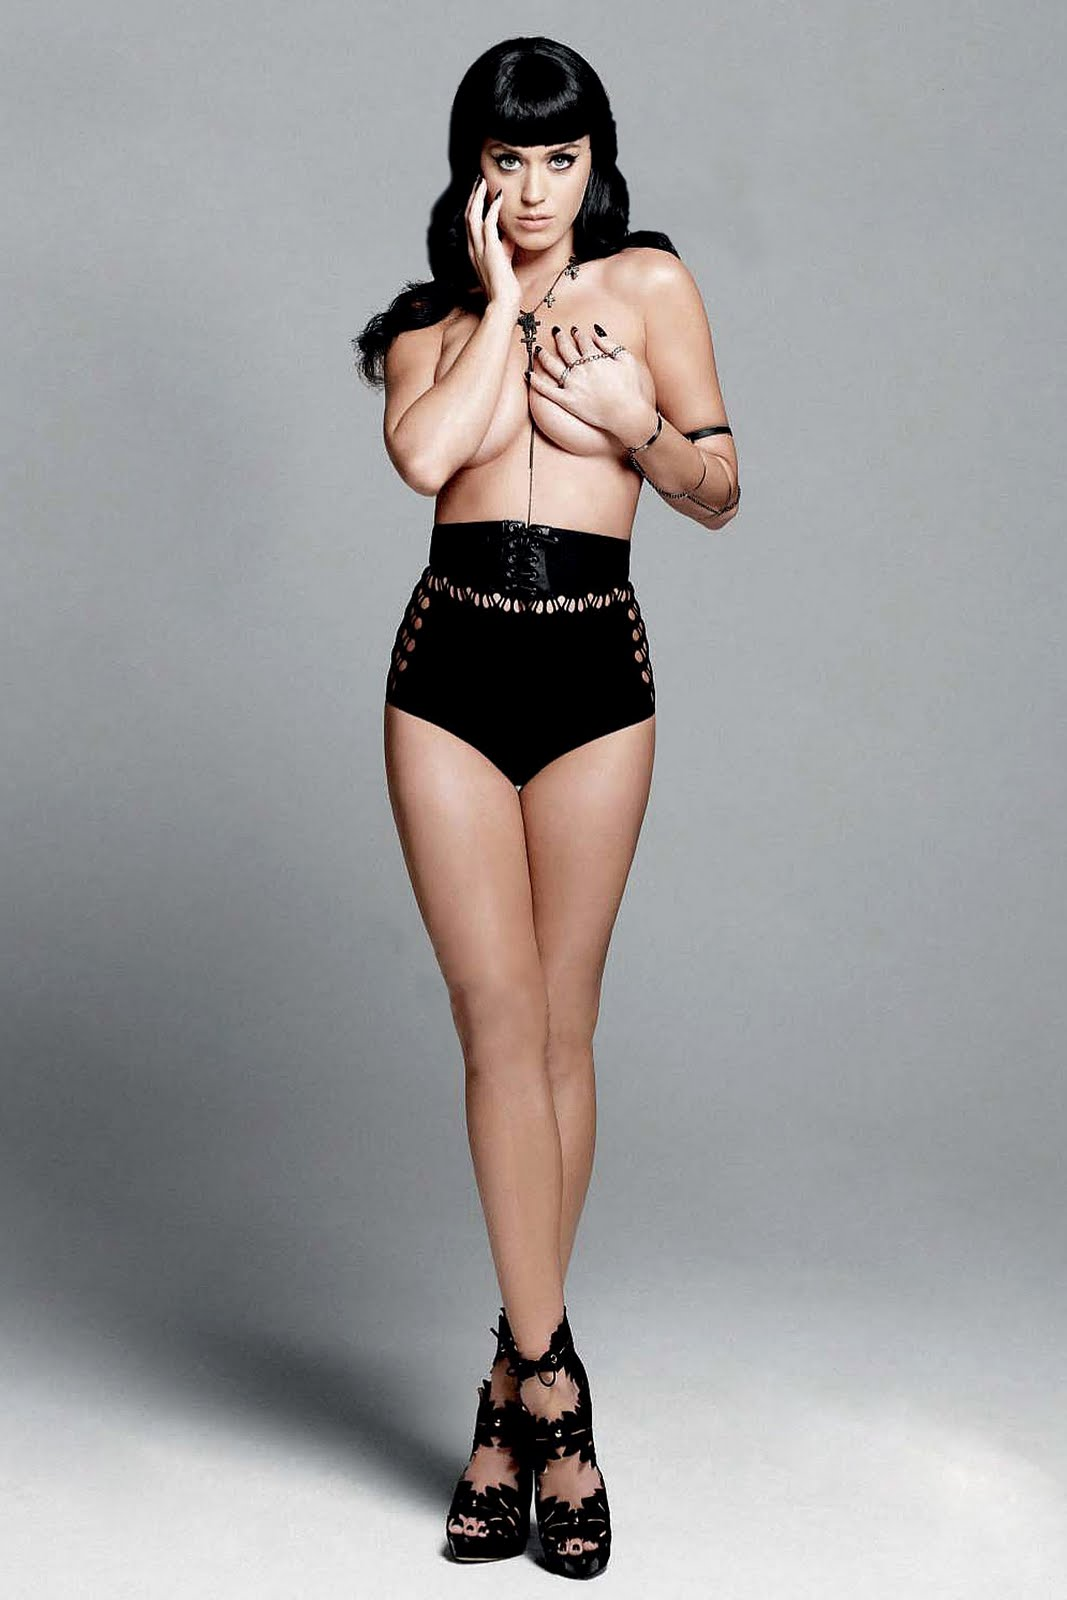 http://1.bp.blogspot.com/_VUXK4kJWEsM/TCifB7xvqbI/AAAAAAAANjc/49pi54J6kiU/s1600/katy-perry-esquire-boobs-01.jpg